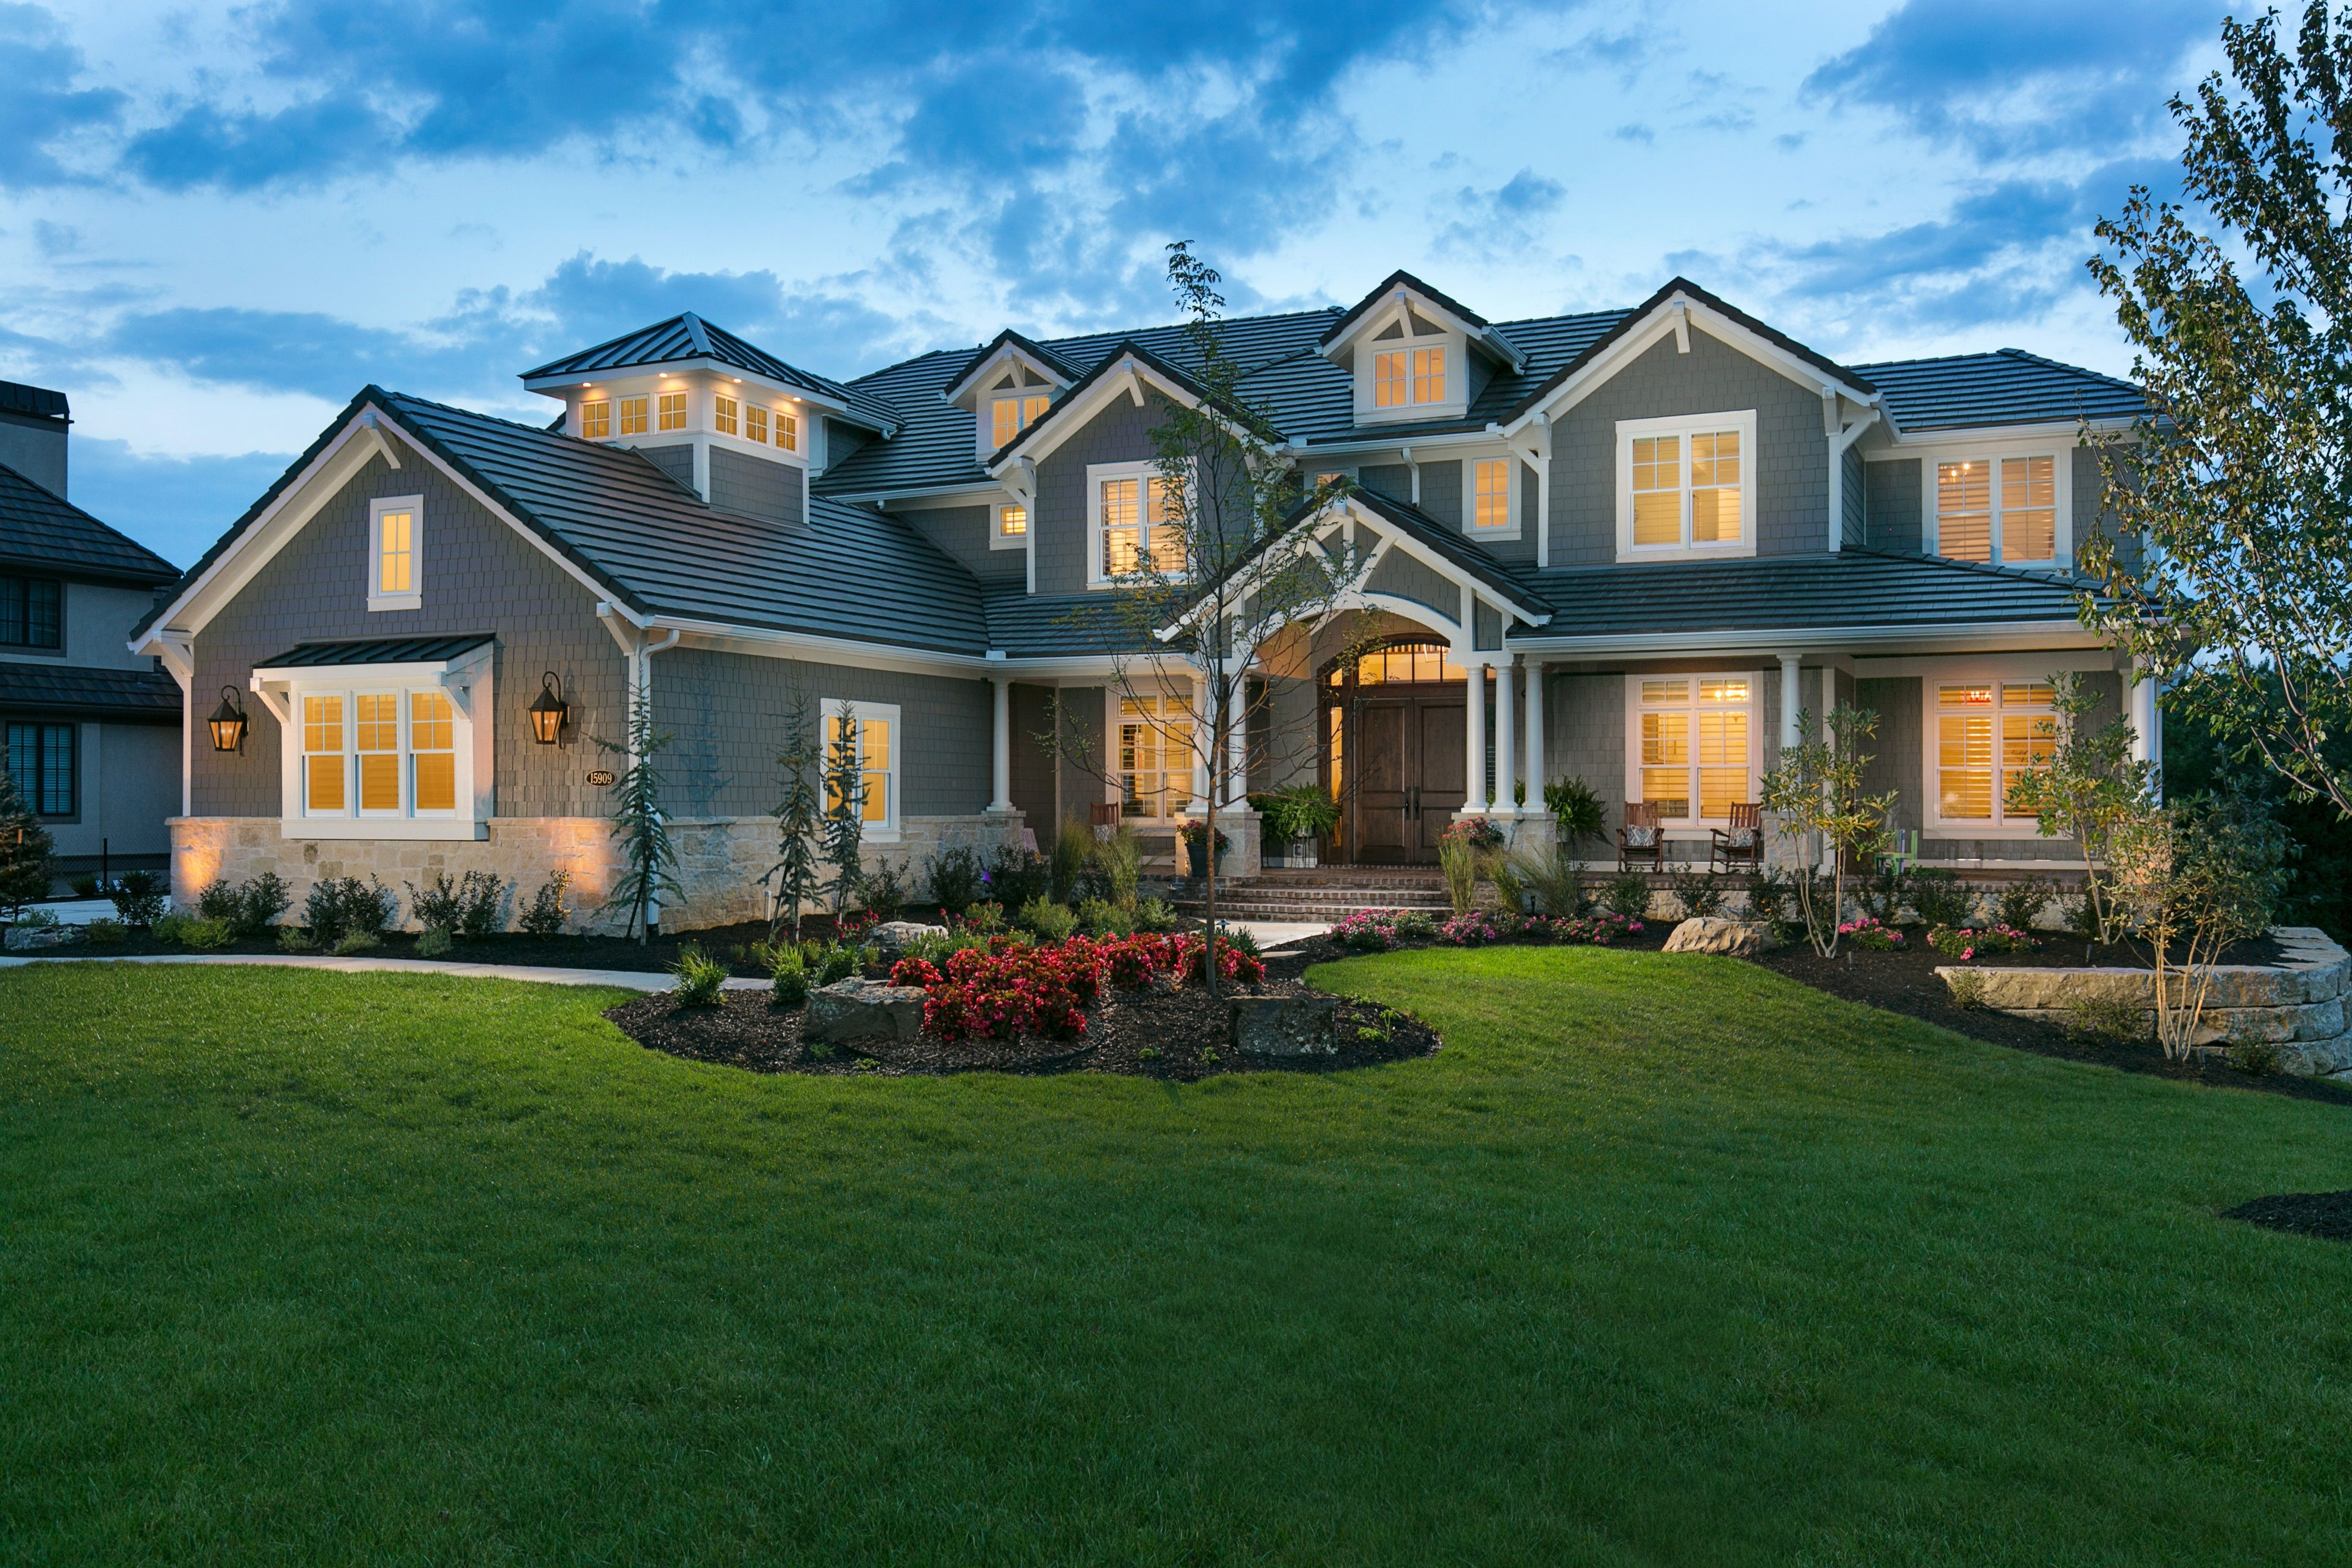 Front Exterior Nantucket Style Brick Front Porch Nantucket Style Homes House Plans Mansion Dream House Exterior